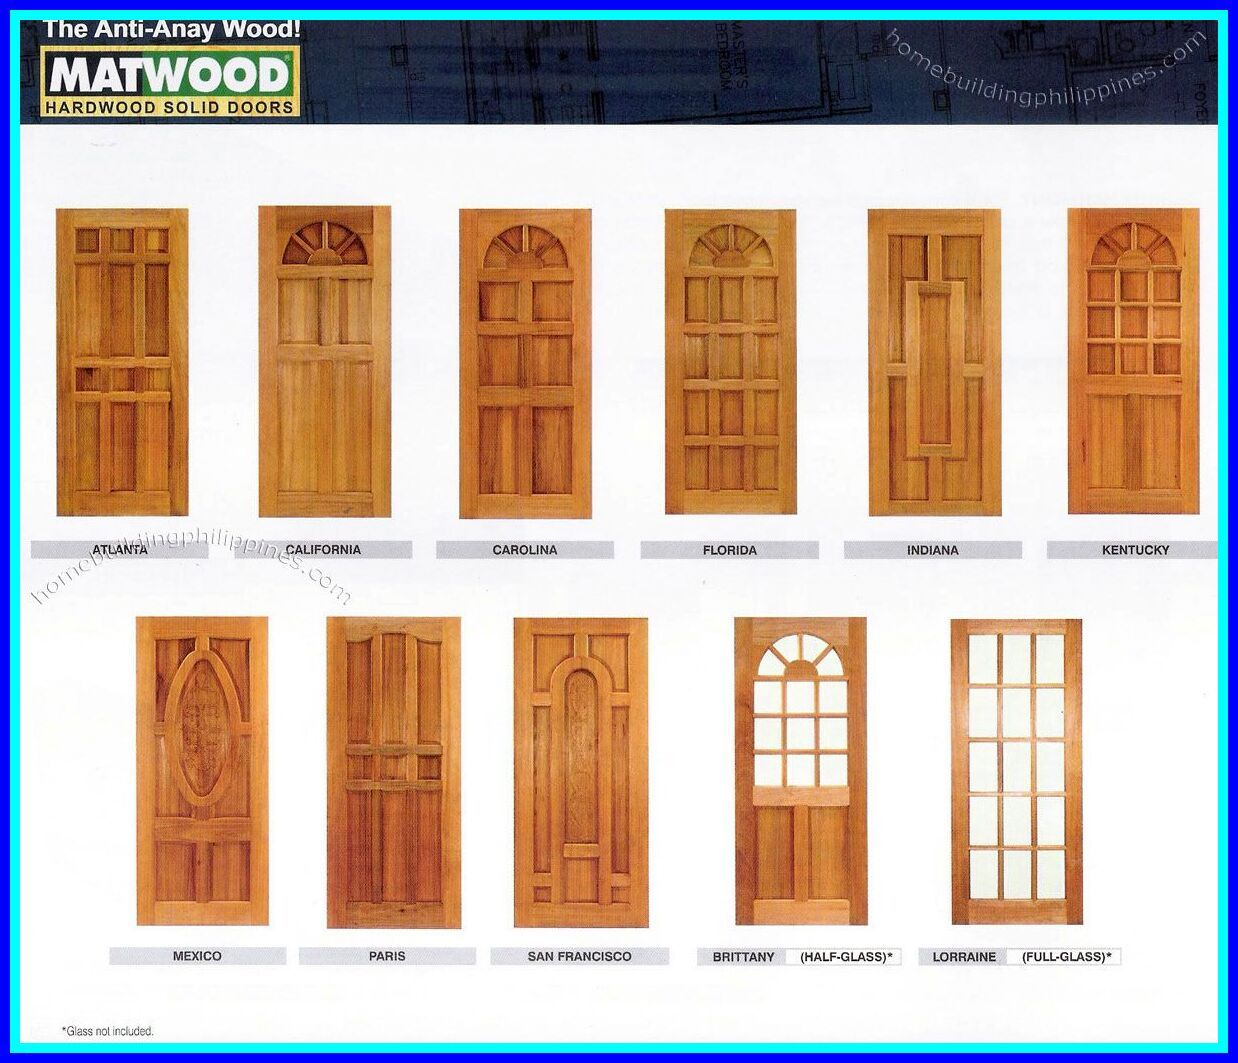 Wooden Door Design For Bedroom Price Wooden Door Design For Bedroom Price Please Click Link In 2020 House Main Door Design Wooden Door Design Bedroom Door Design